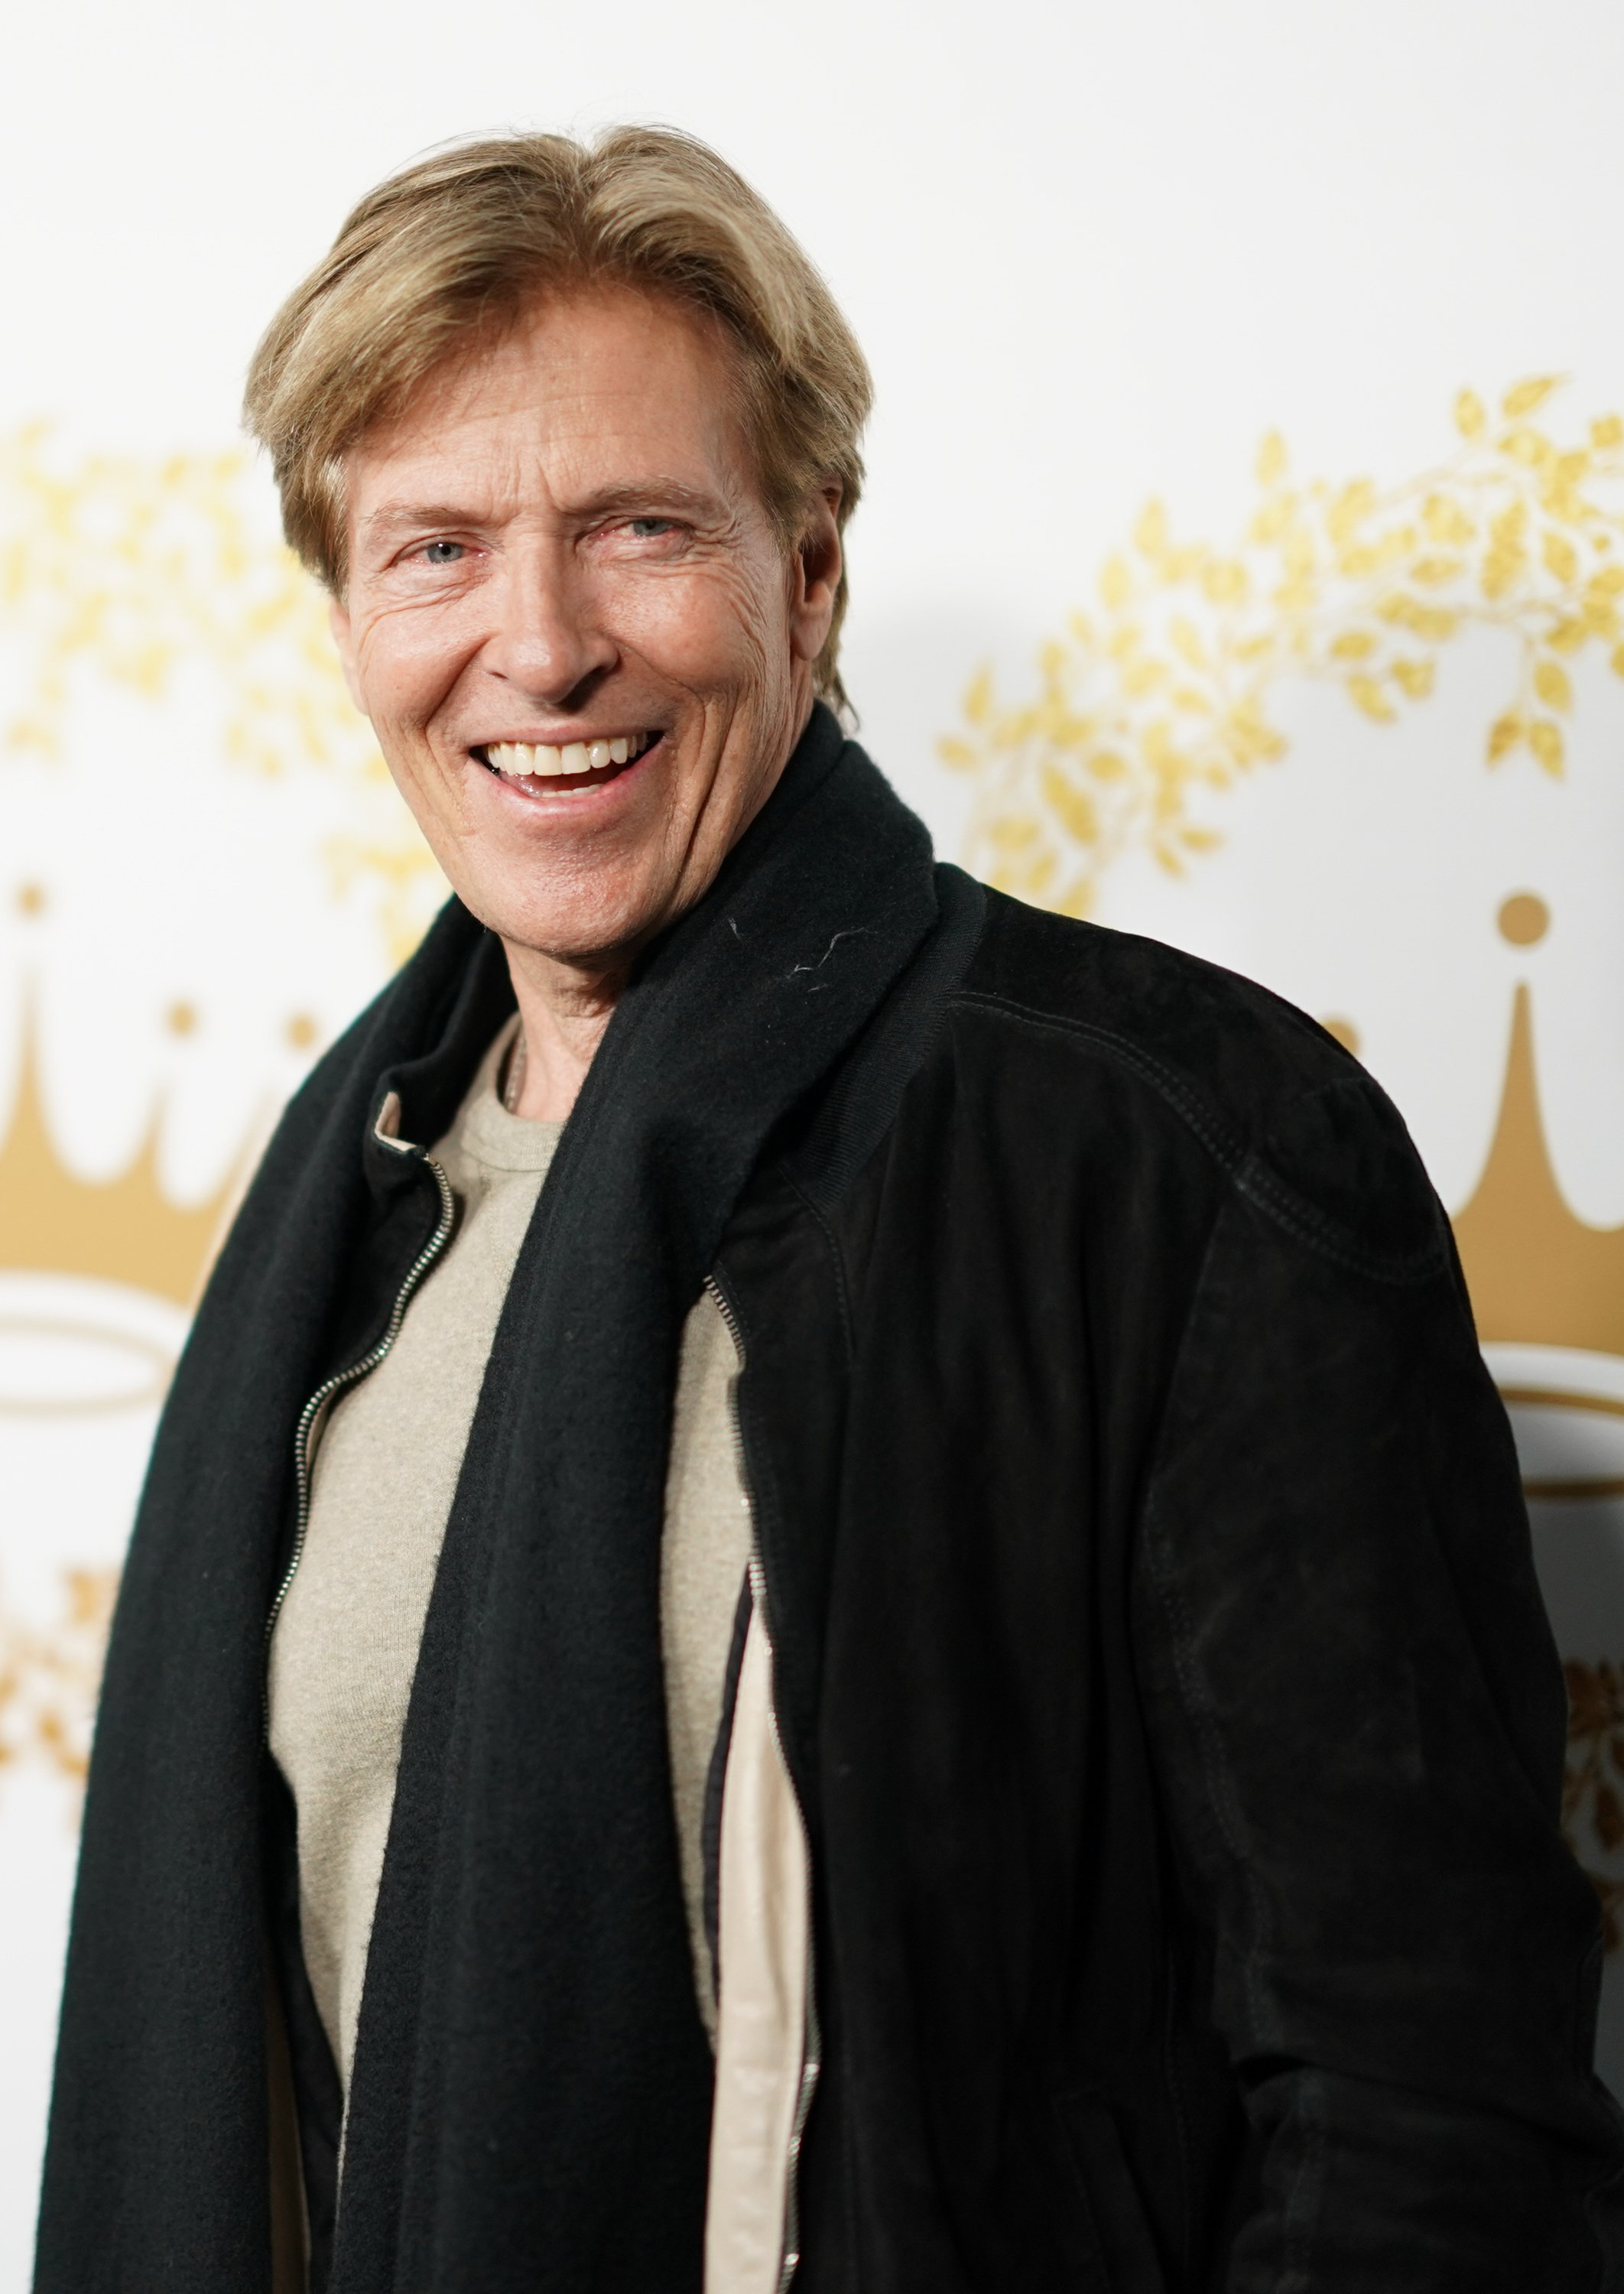 Jack Wagner attends Hallmark Channel And Hallmark Movies And Mysteries 2019 Winter TCA Tour at Tournament House on February 09, 2019, in Pasadena, California. | Source: Getty Images.